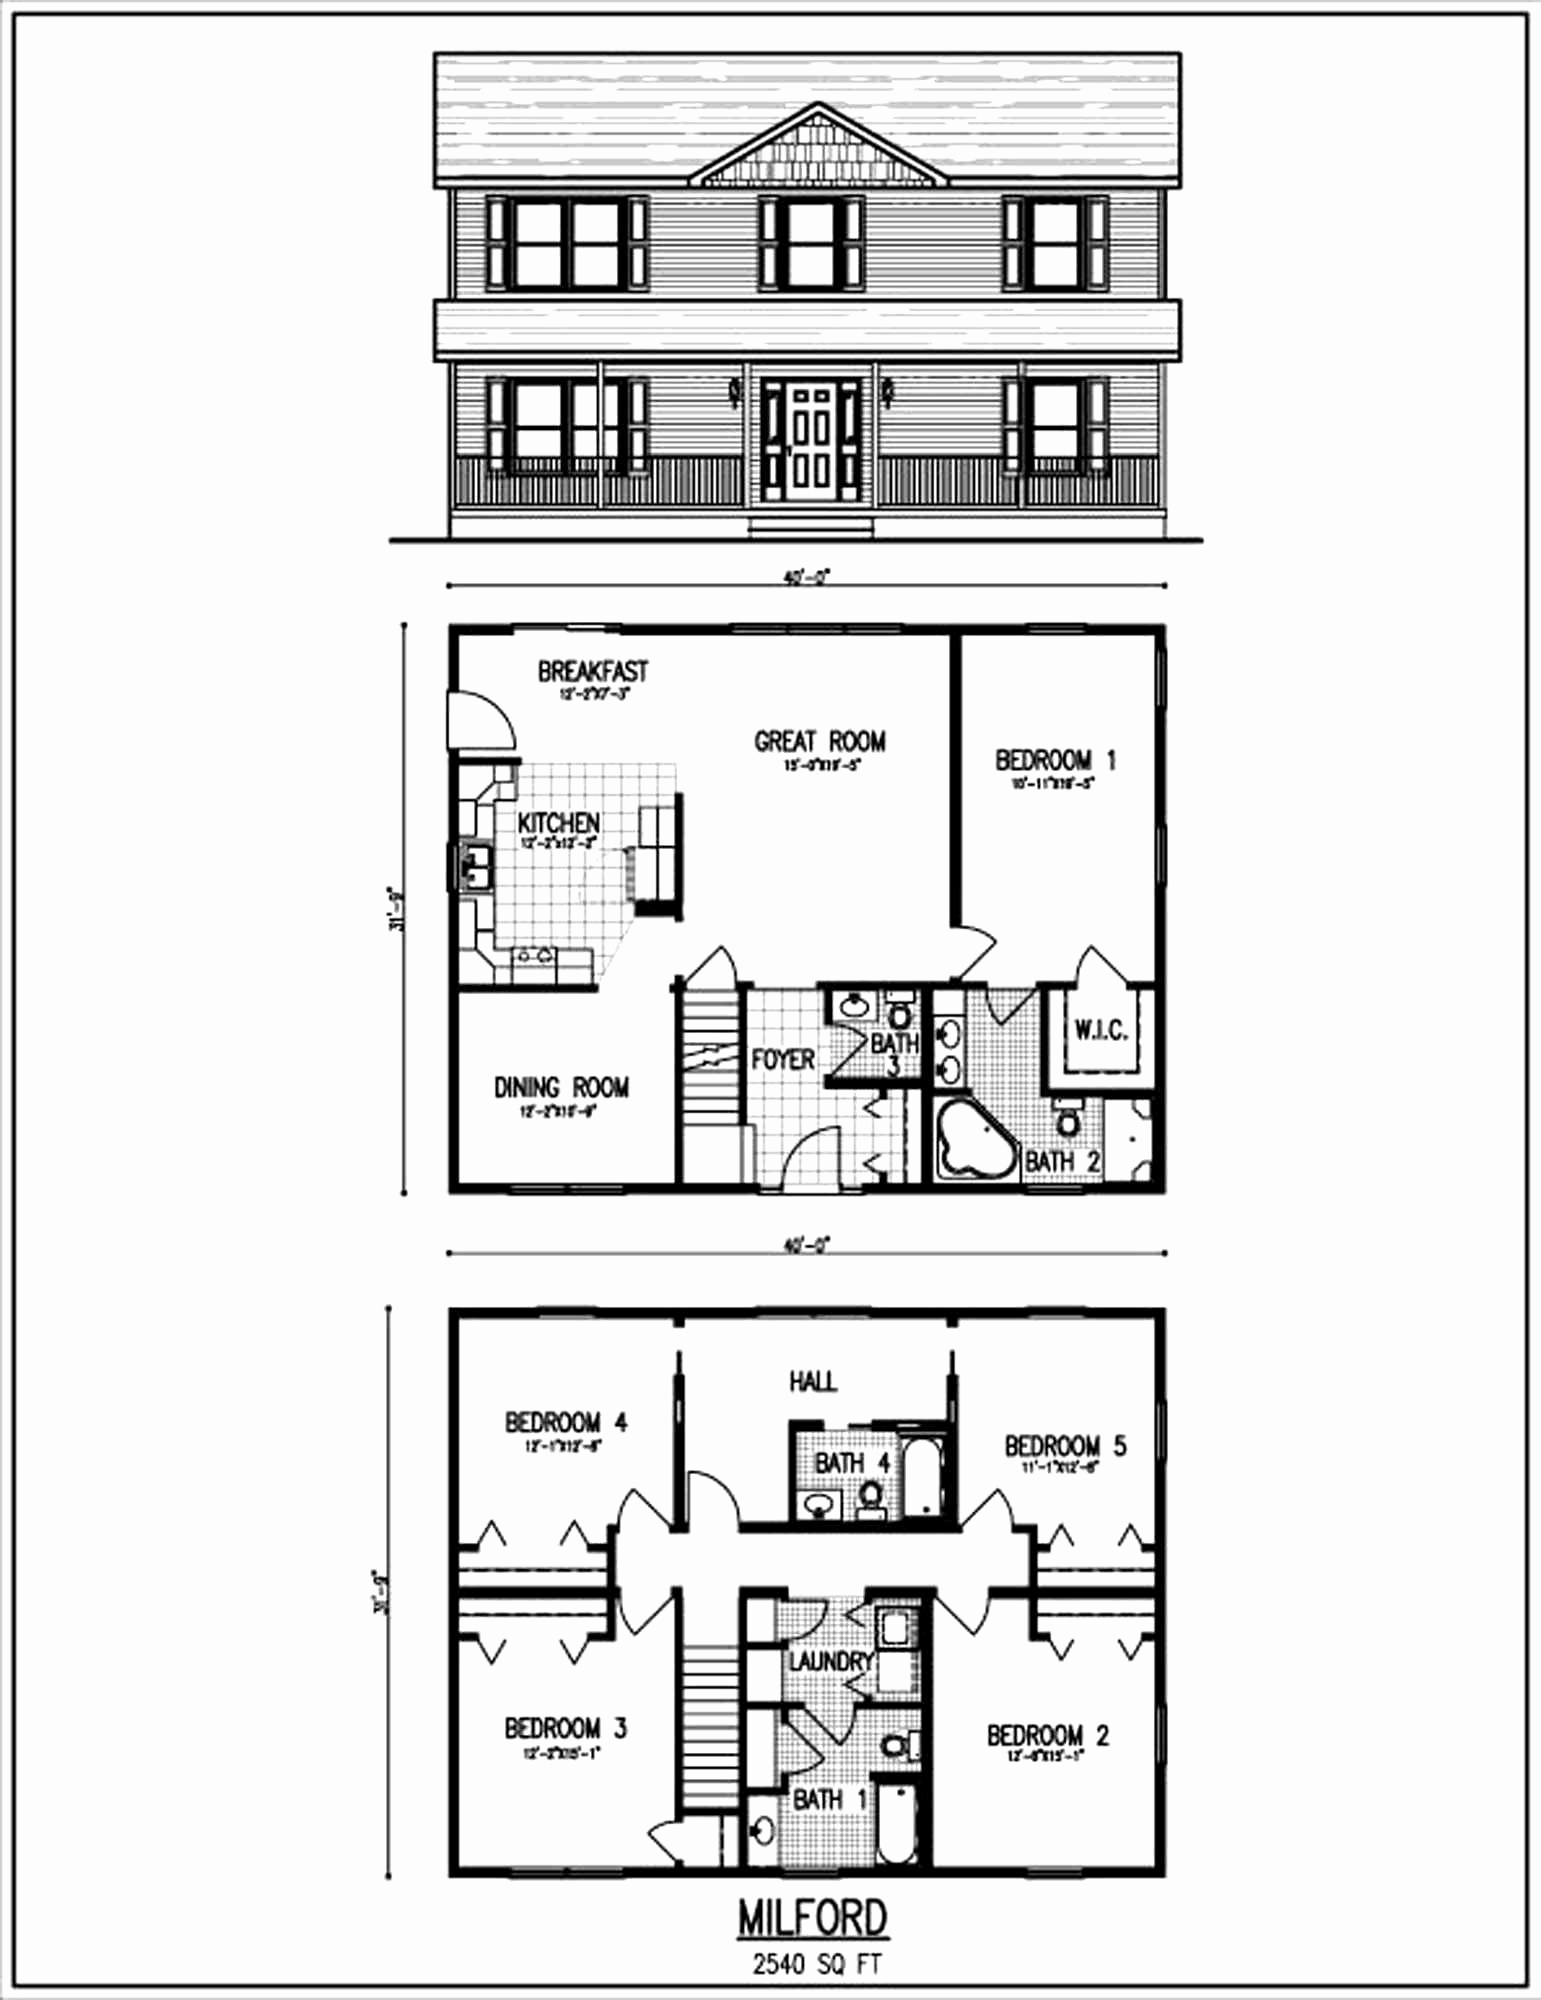 [SCHEMATICS_4FR]  DL_0784] 2 Story House Electrical Plan Schematic Wiring | Wiring Diagram For A 3 Bedroom House |  | Sand Pap Hendil Mohammedshrine Librar Wiring 101